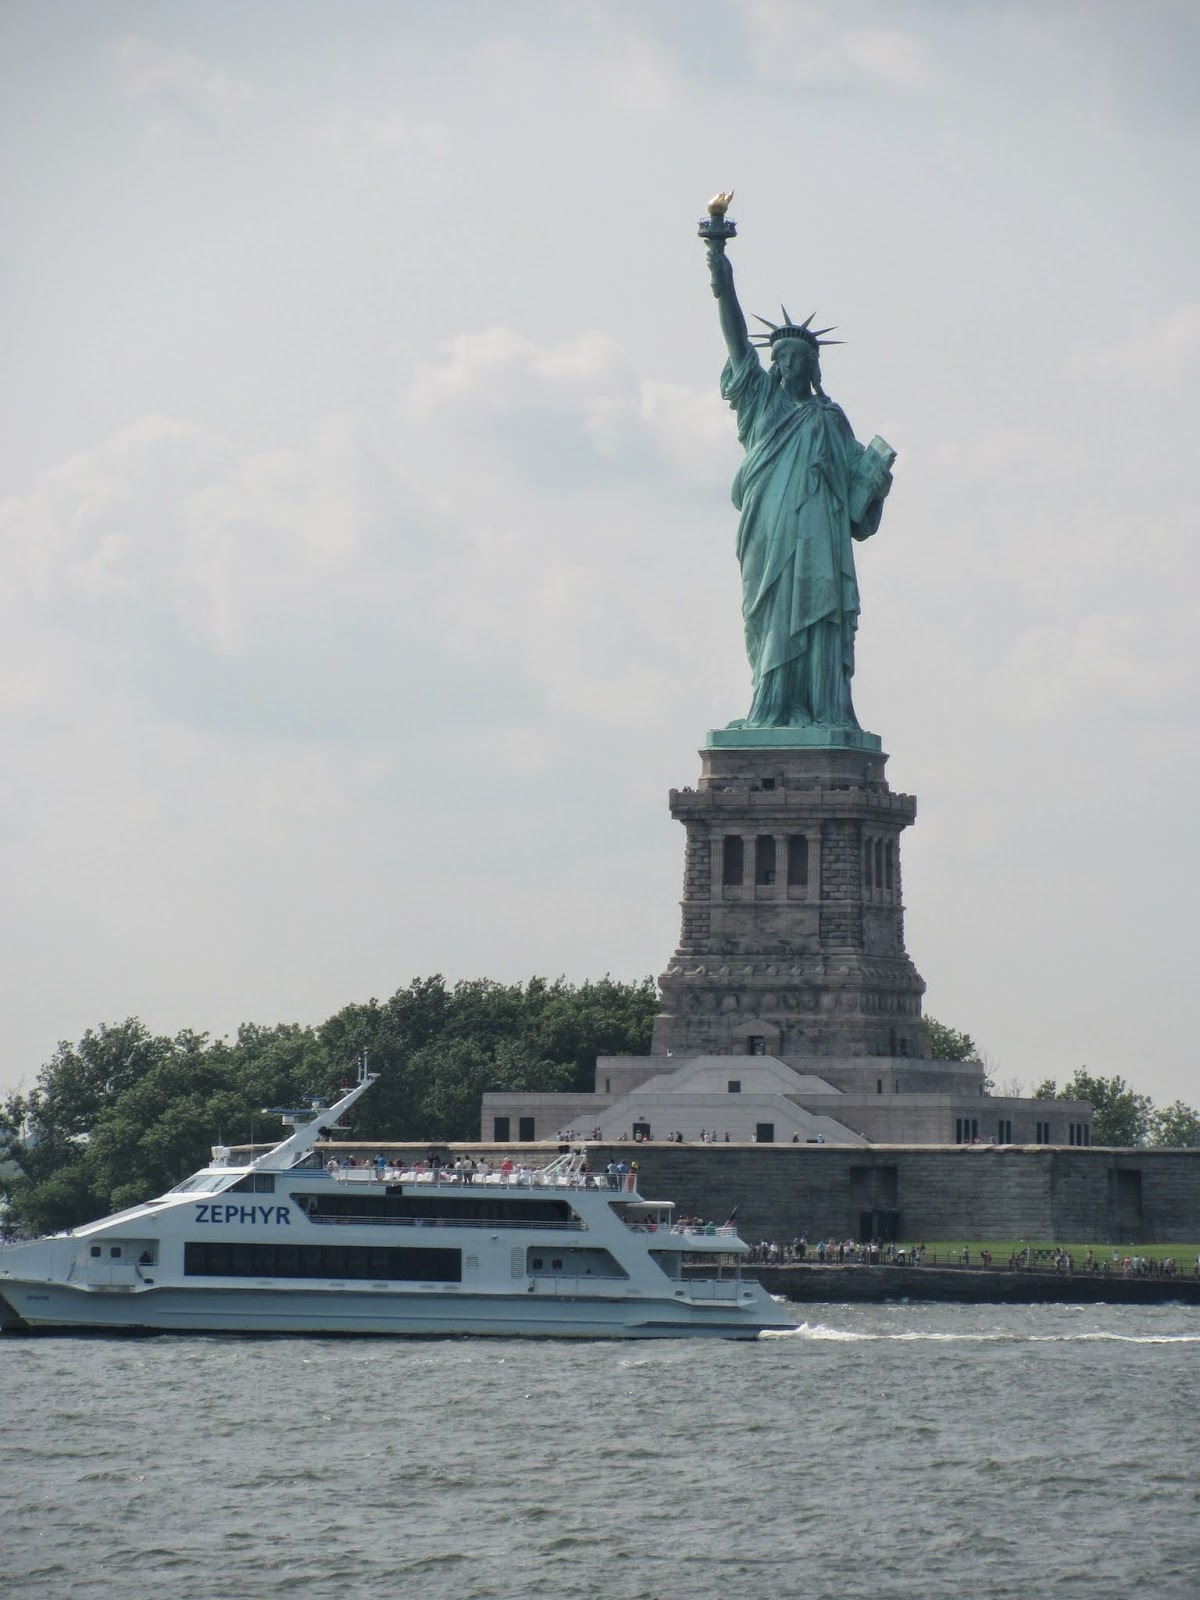 Why Pay for a Statue Cruise with Free Ferries Around?